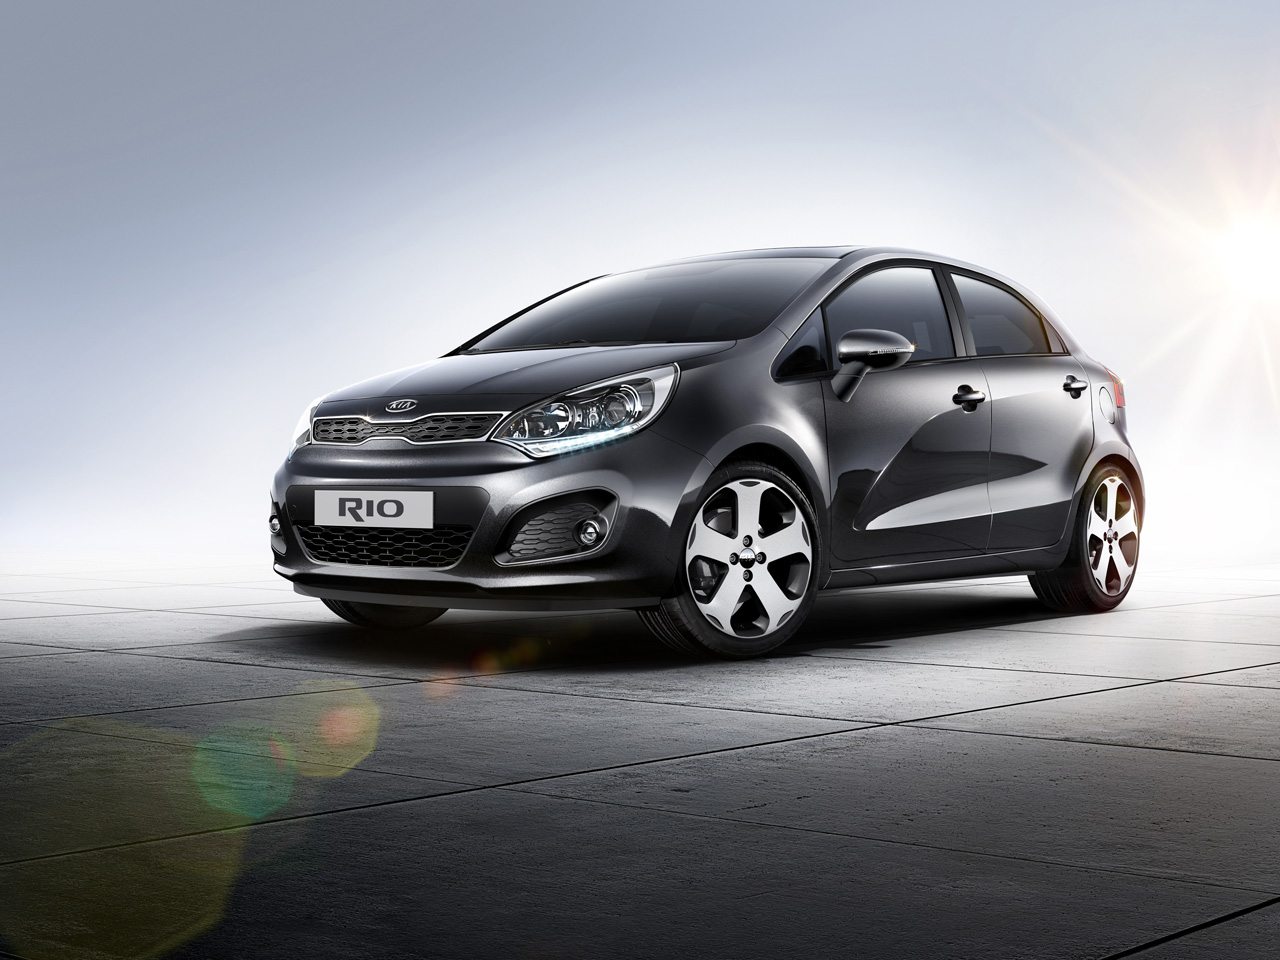 Kia Rio photo 15